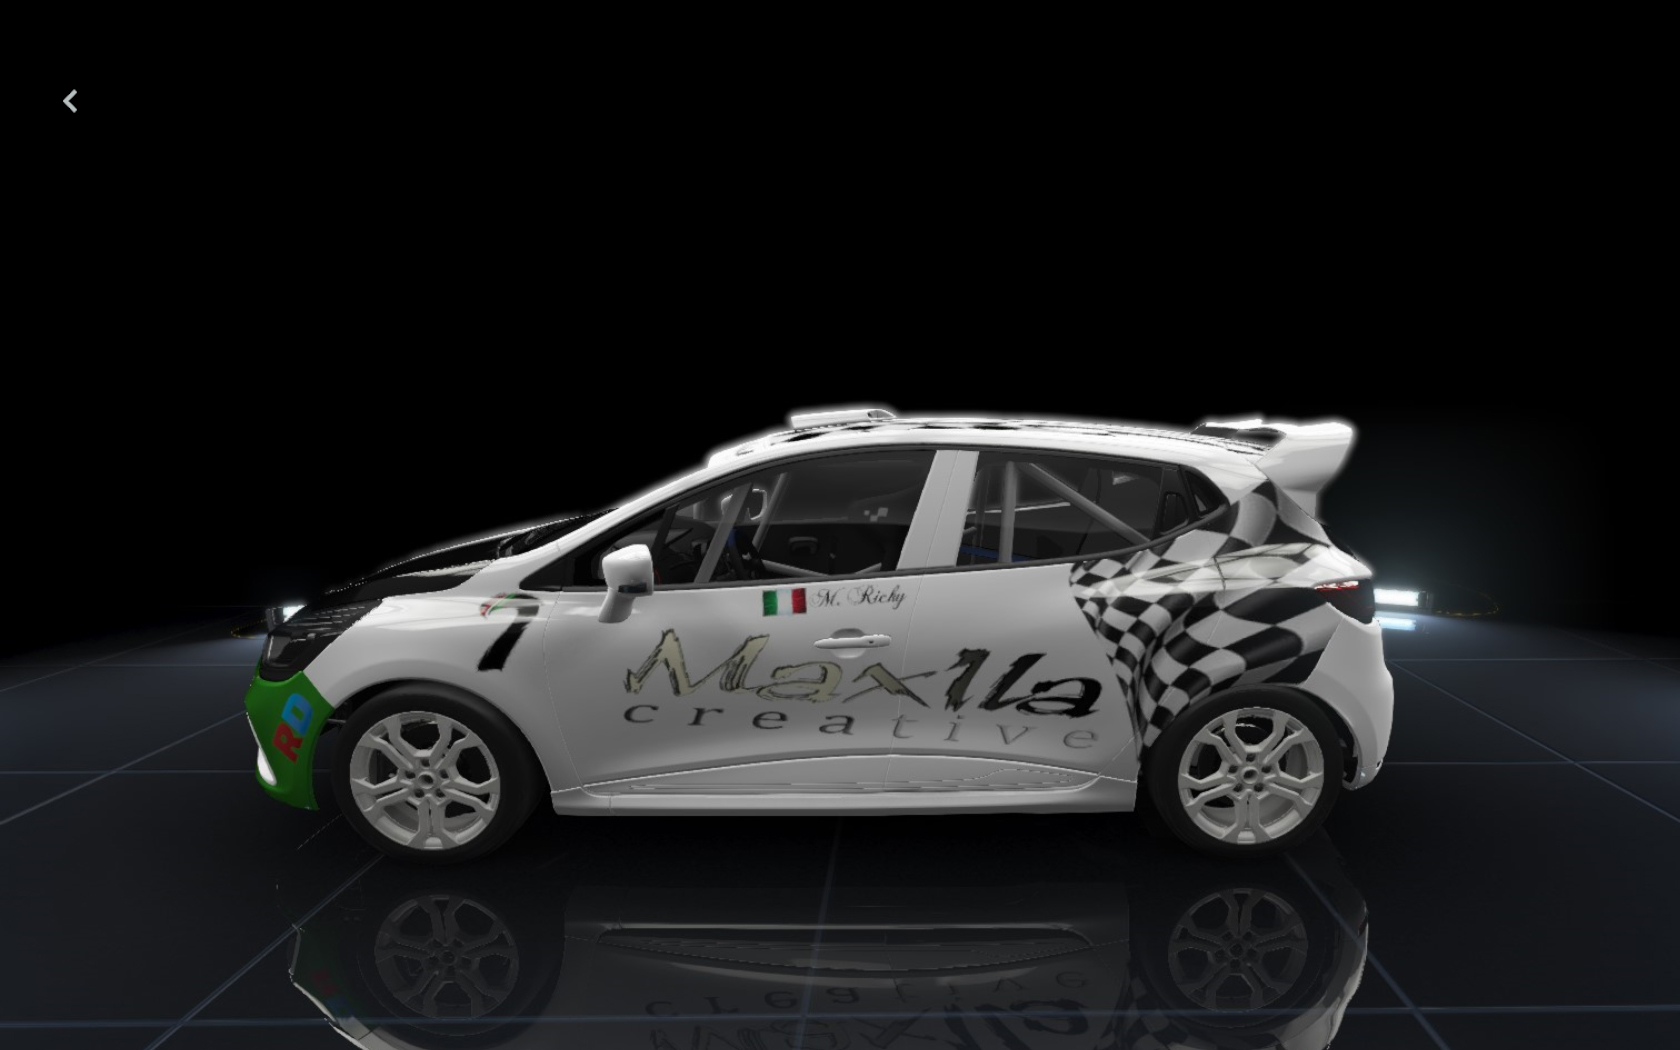 Custom livery Project C.A.R.S.                       Renault clio cup